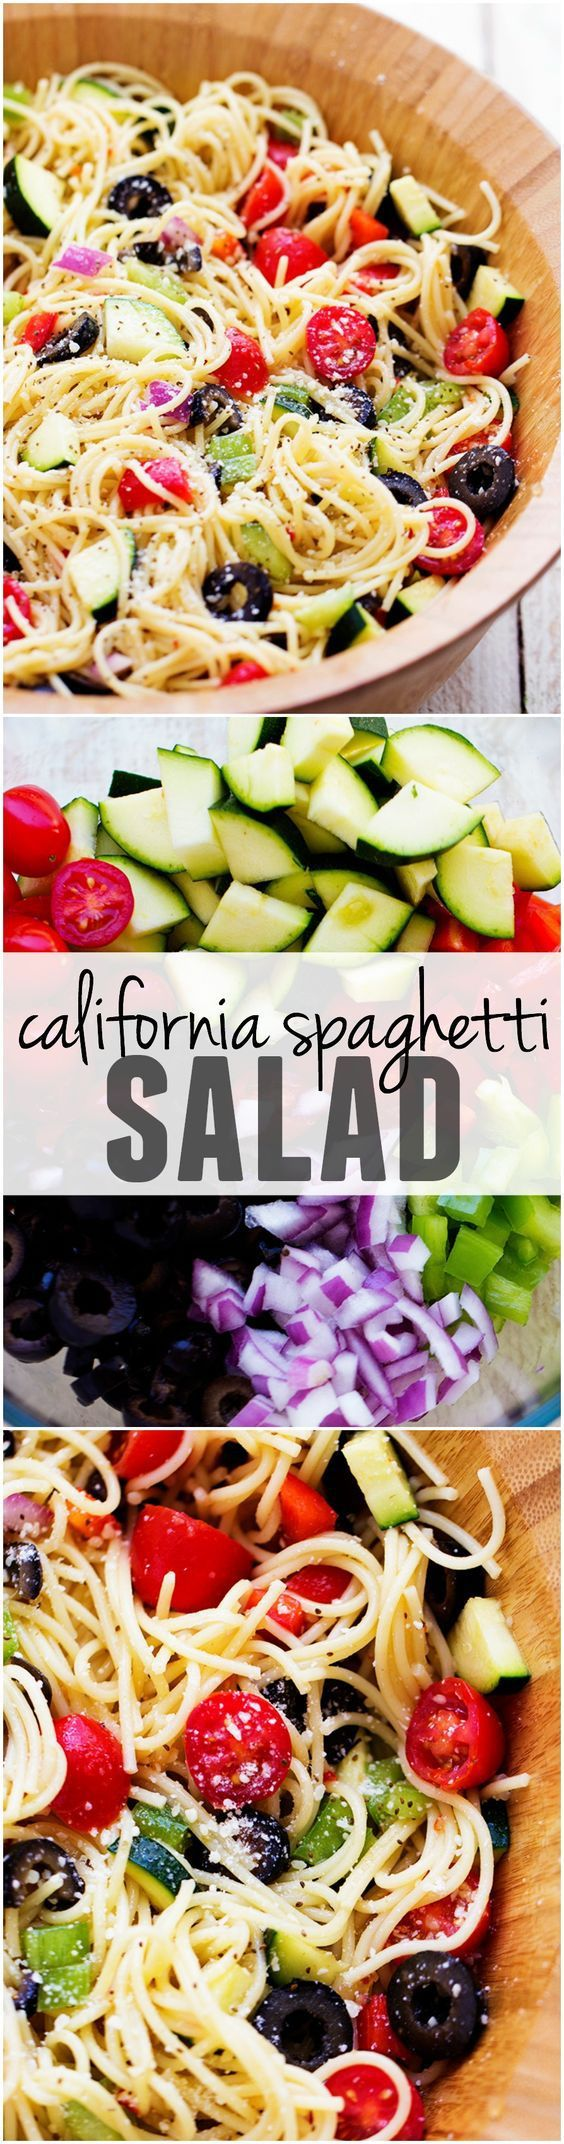 California Spaghetti Pasta Salad Recipe via The Recipe Critic - This California Spaghetti Salad is full of delicious summer veggies and topped with zesty italian dressing... it will be the HUGE HIT of any potluck! Easy Pasta Salad Recipes - The BEST Yummy Barbecue Side Dishes, Potluck Favorites and Summer Dinner Party Crowd Pleasers